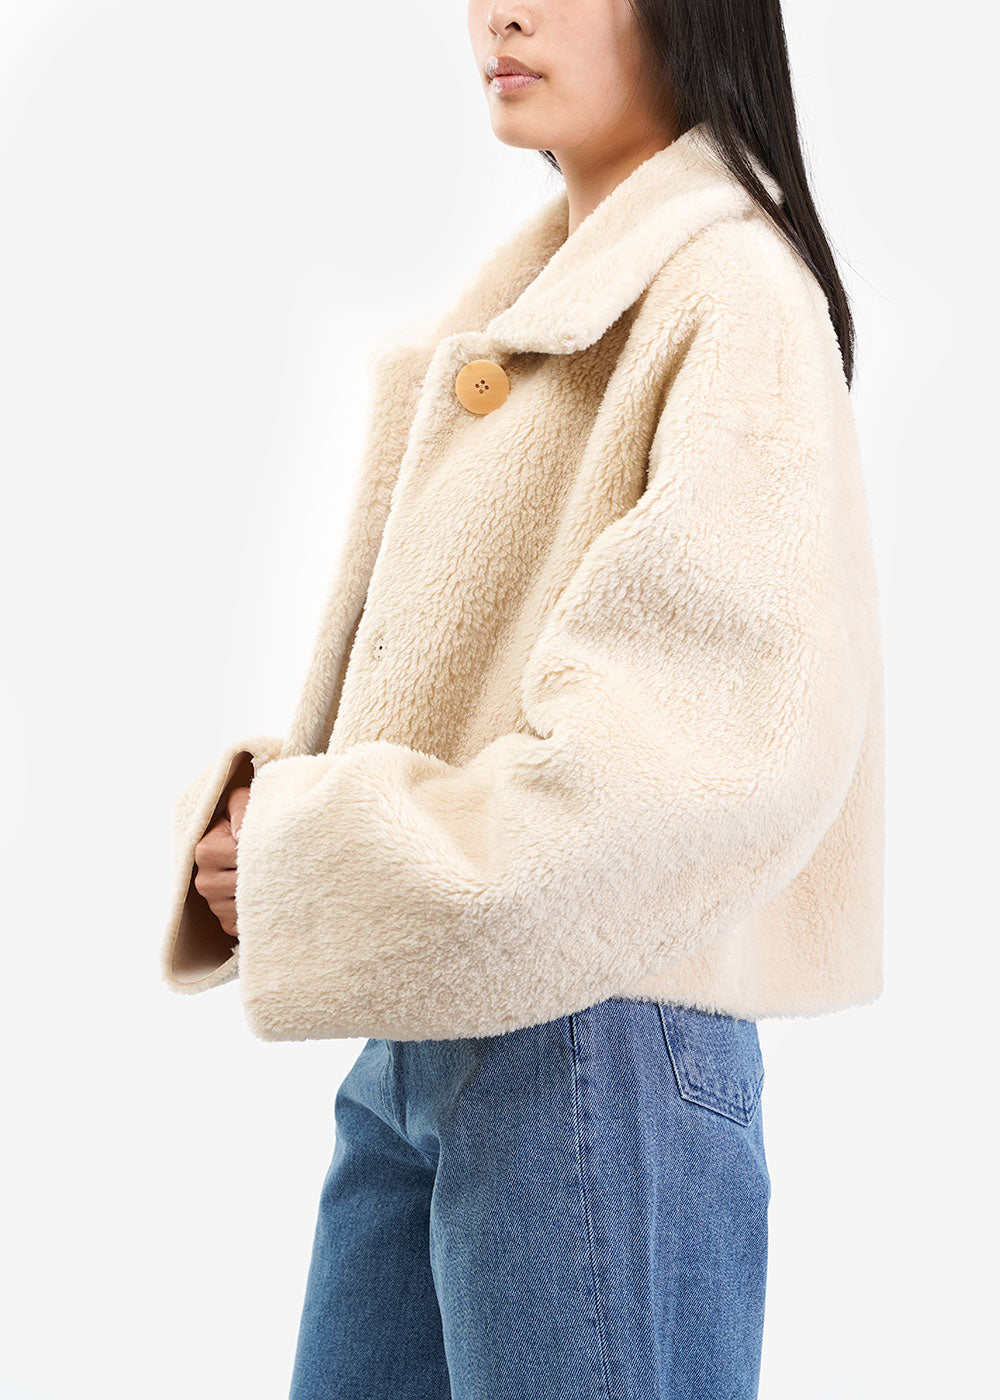 AMOMENTO Shearling Button-Up Jacket — Shop sustainable fashion and slow fashion at New Classics Studios